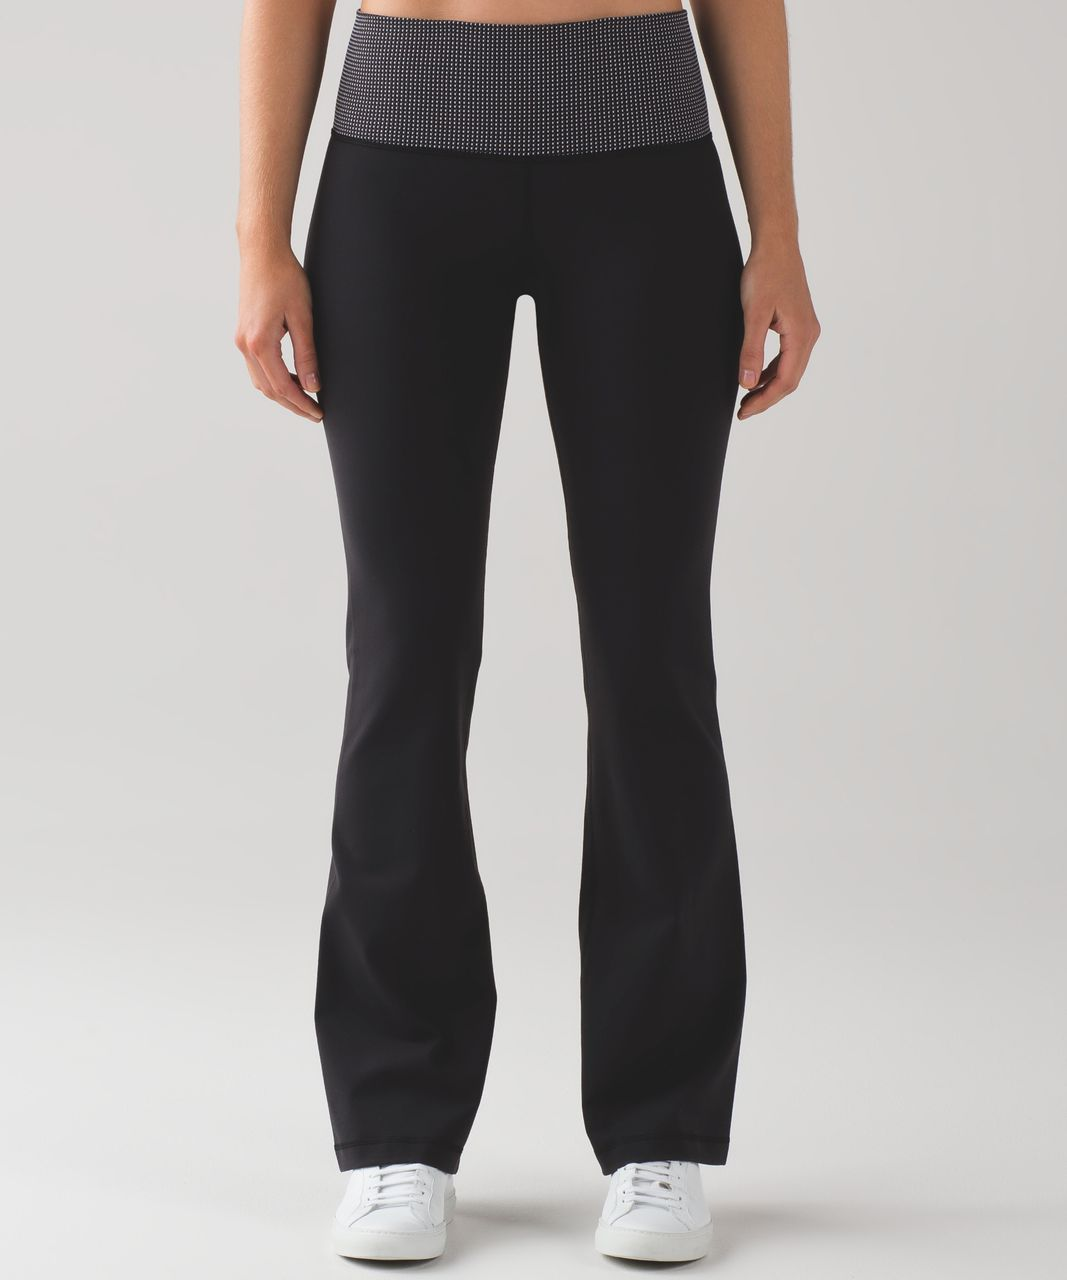 Lululemon Groove Pant III (Regular) (Full-On Luon) - Black / Teeny Check White Black